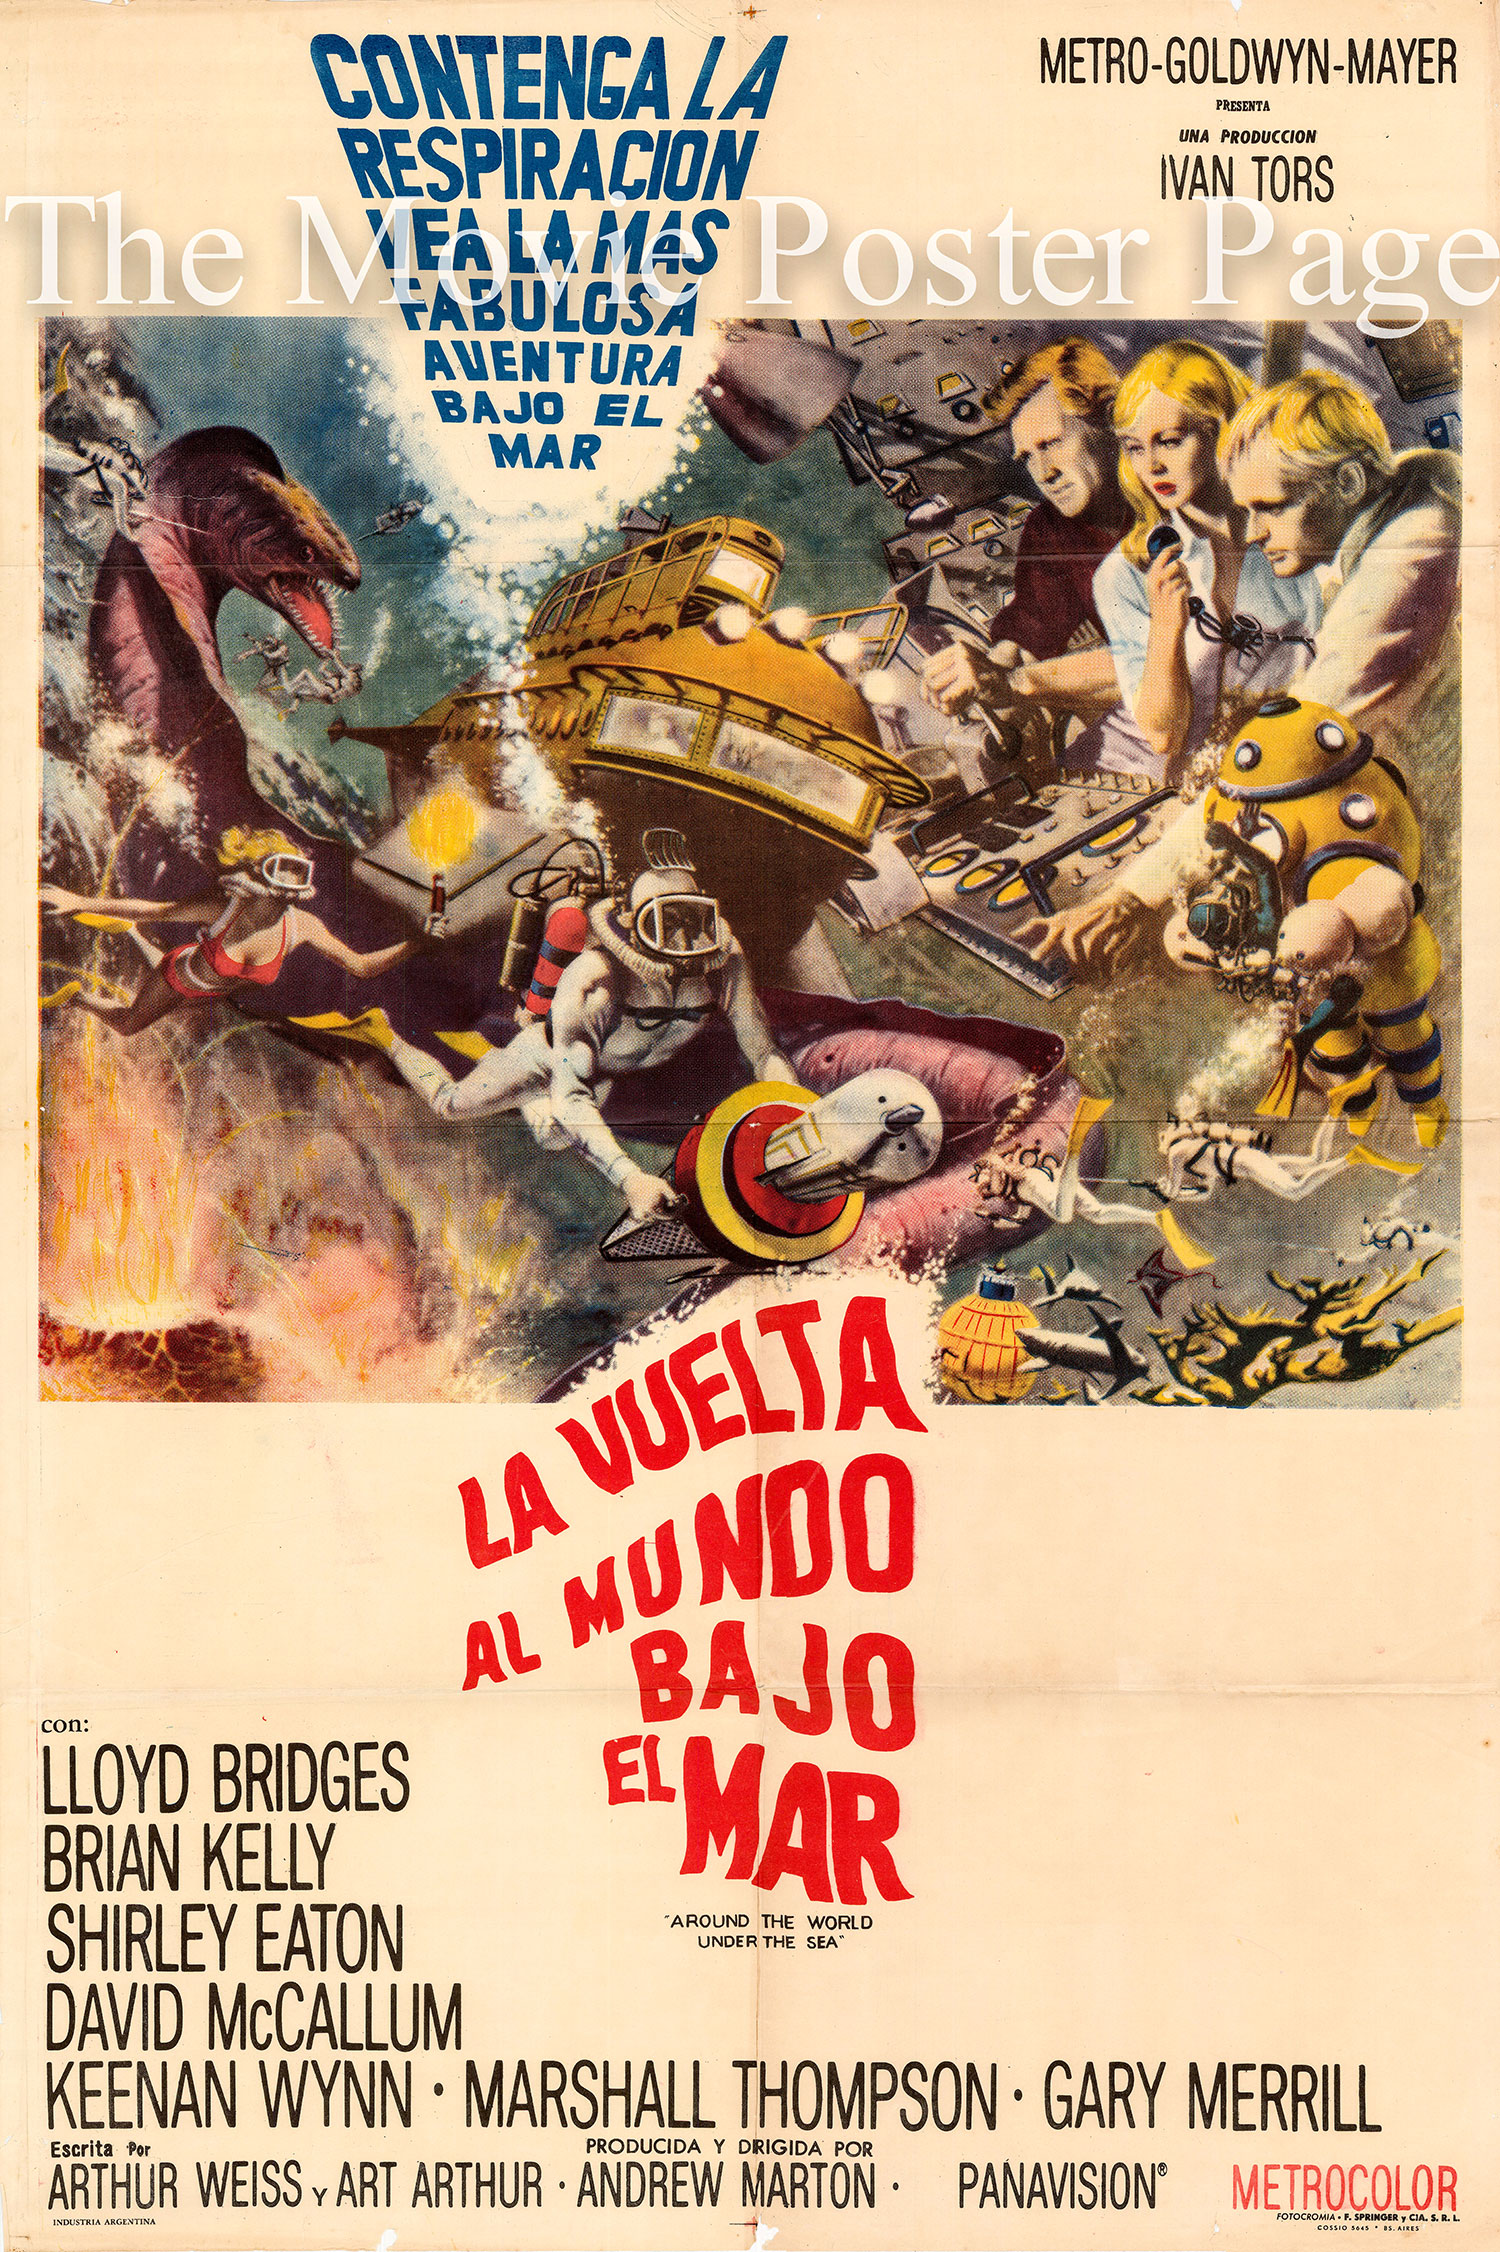 Pictured is an Argentine one-sheet for the 1966 Andrew Marton film Around the World under the Sea starring Lloyd Bridges.